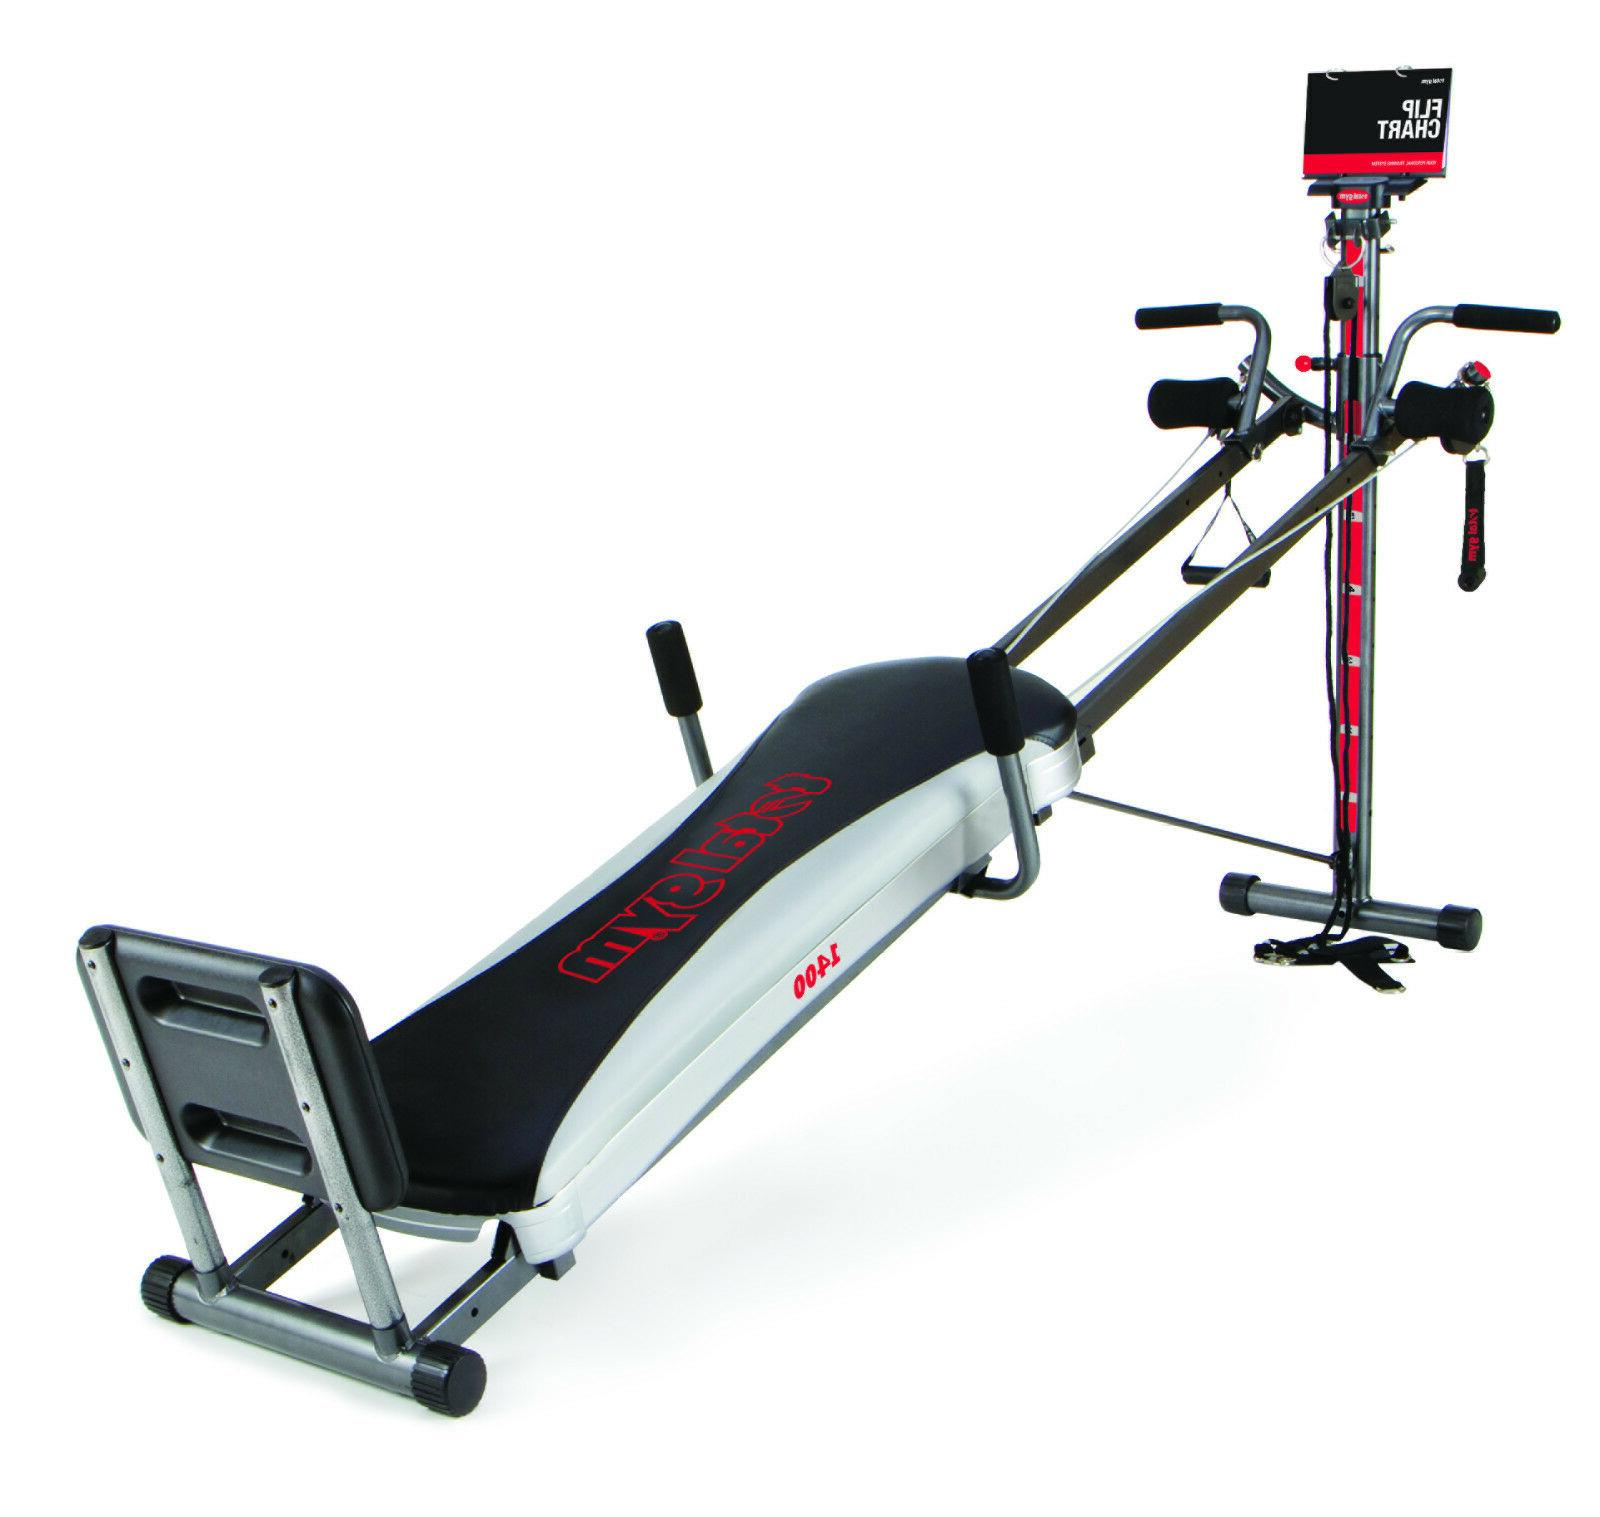 1400 deluxe home fitness exercise machine equipment